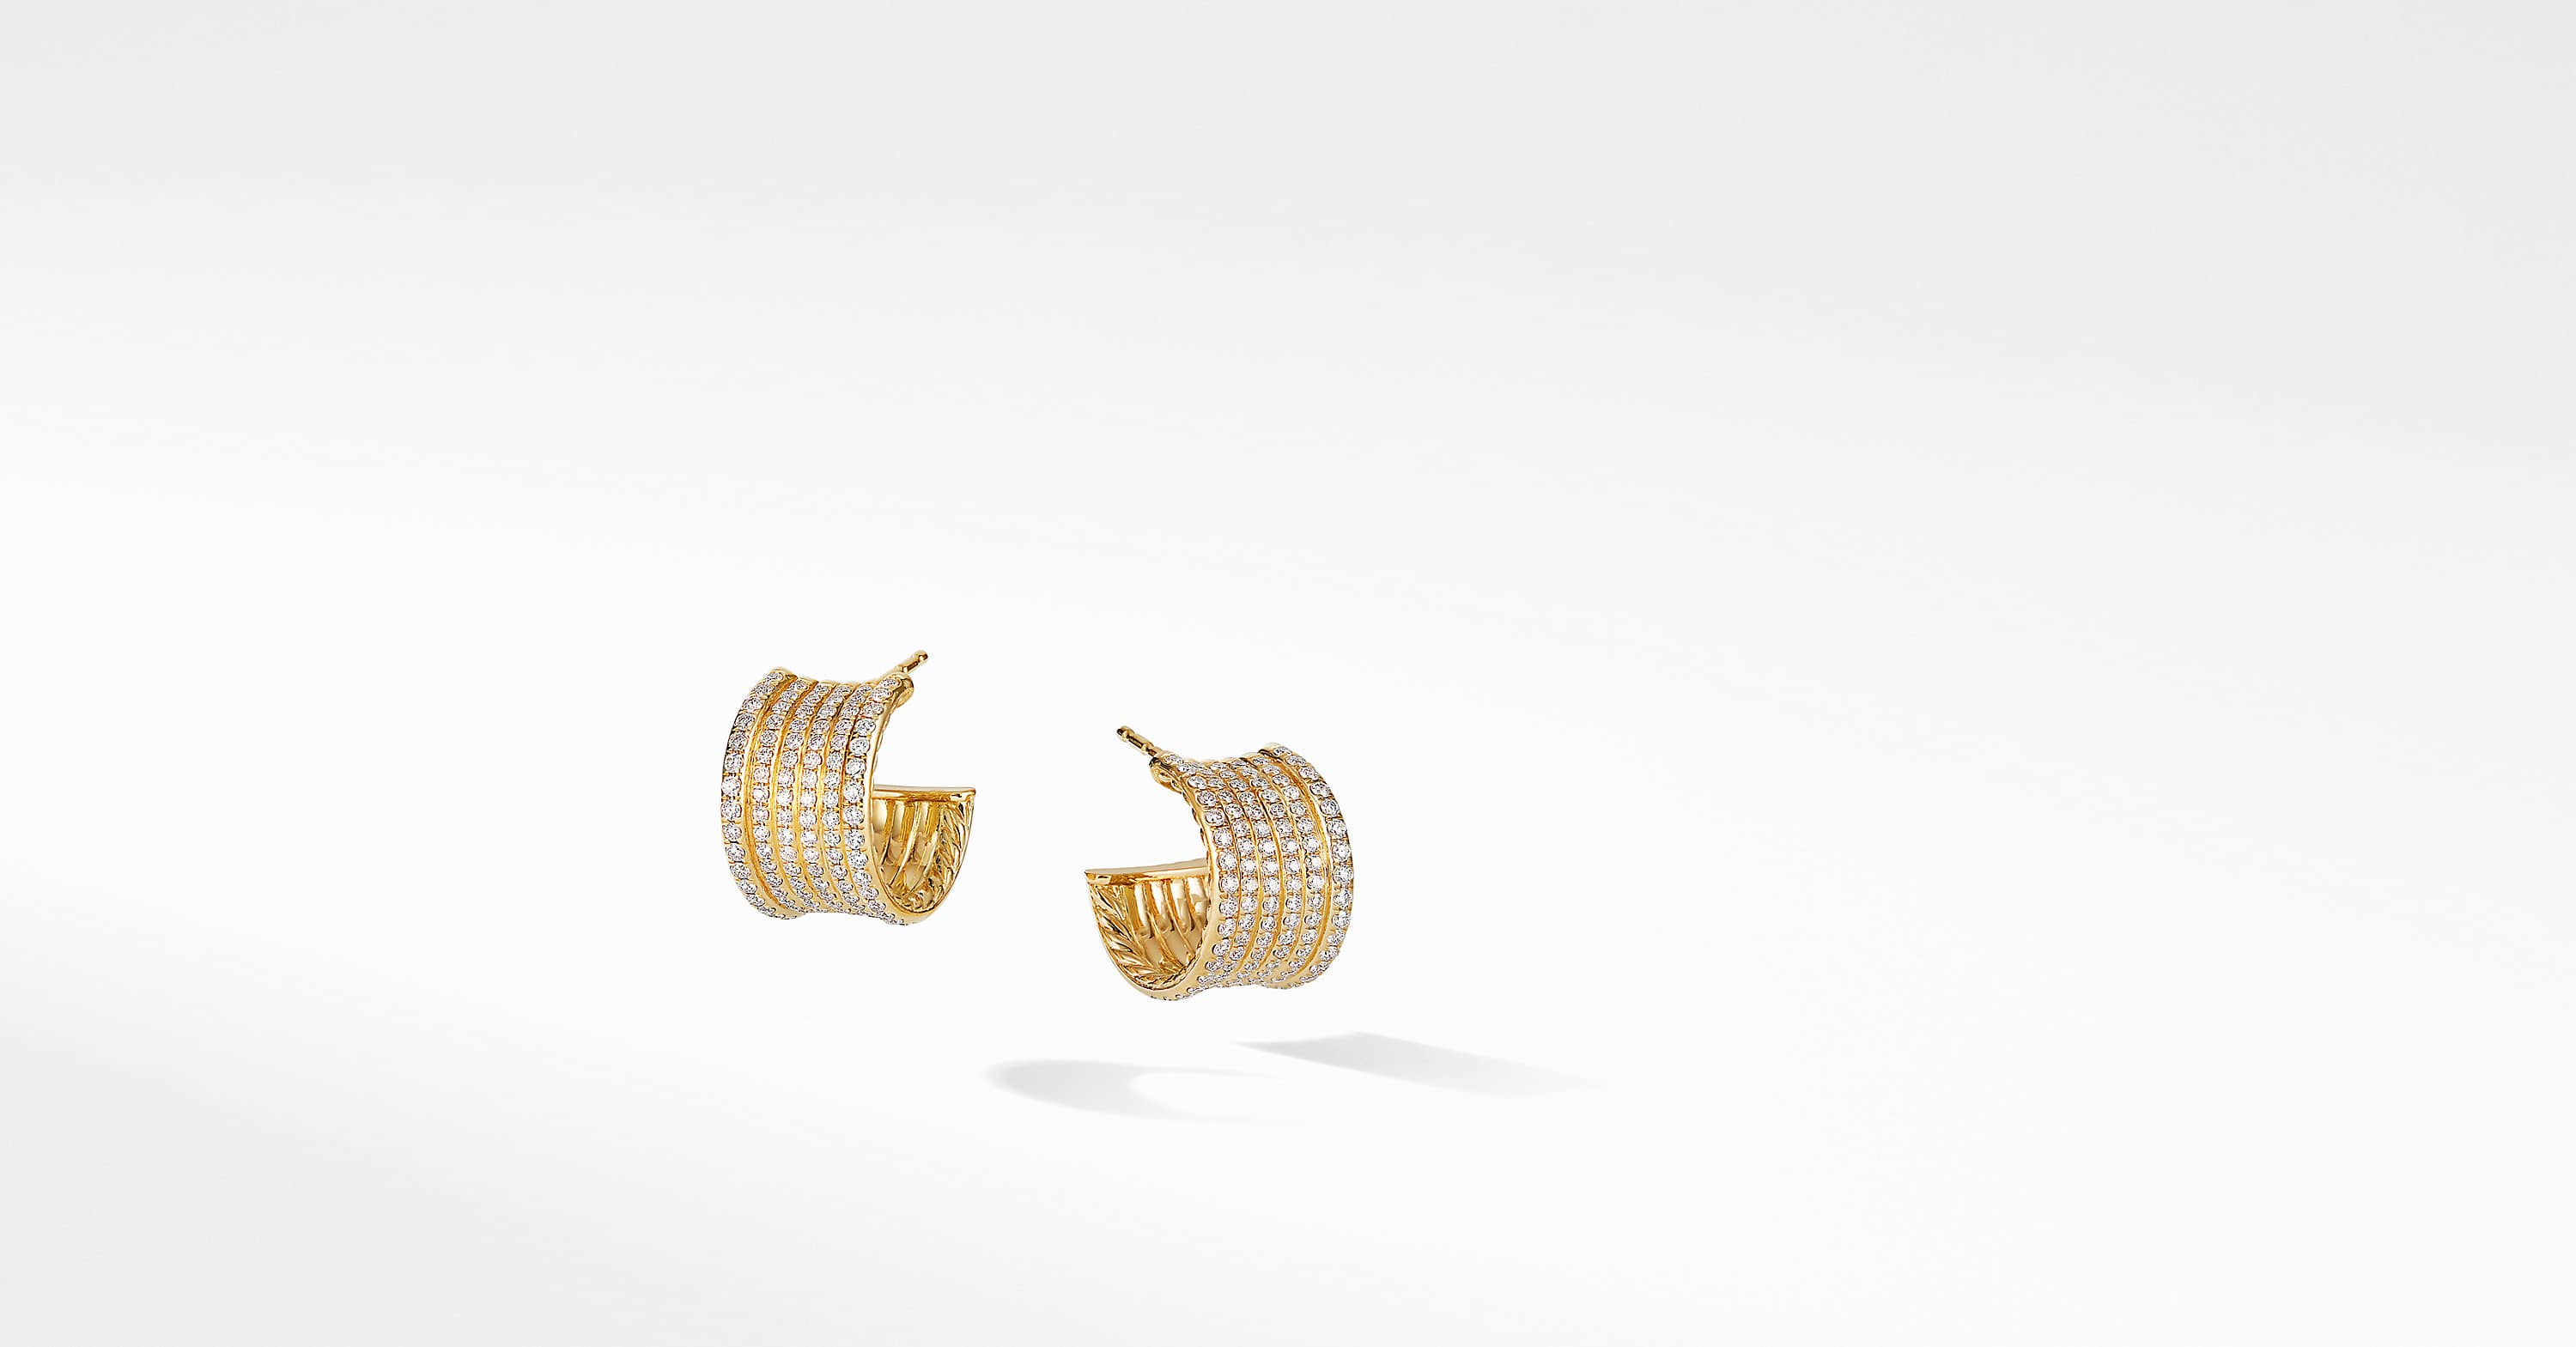 DY Origami Cable Huggie Hoops in 18K Yellow Gold and Full Pavé